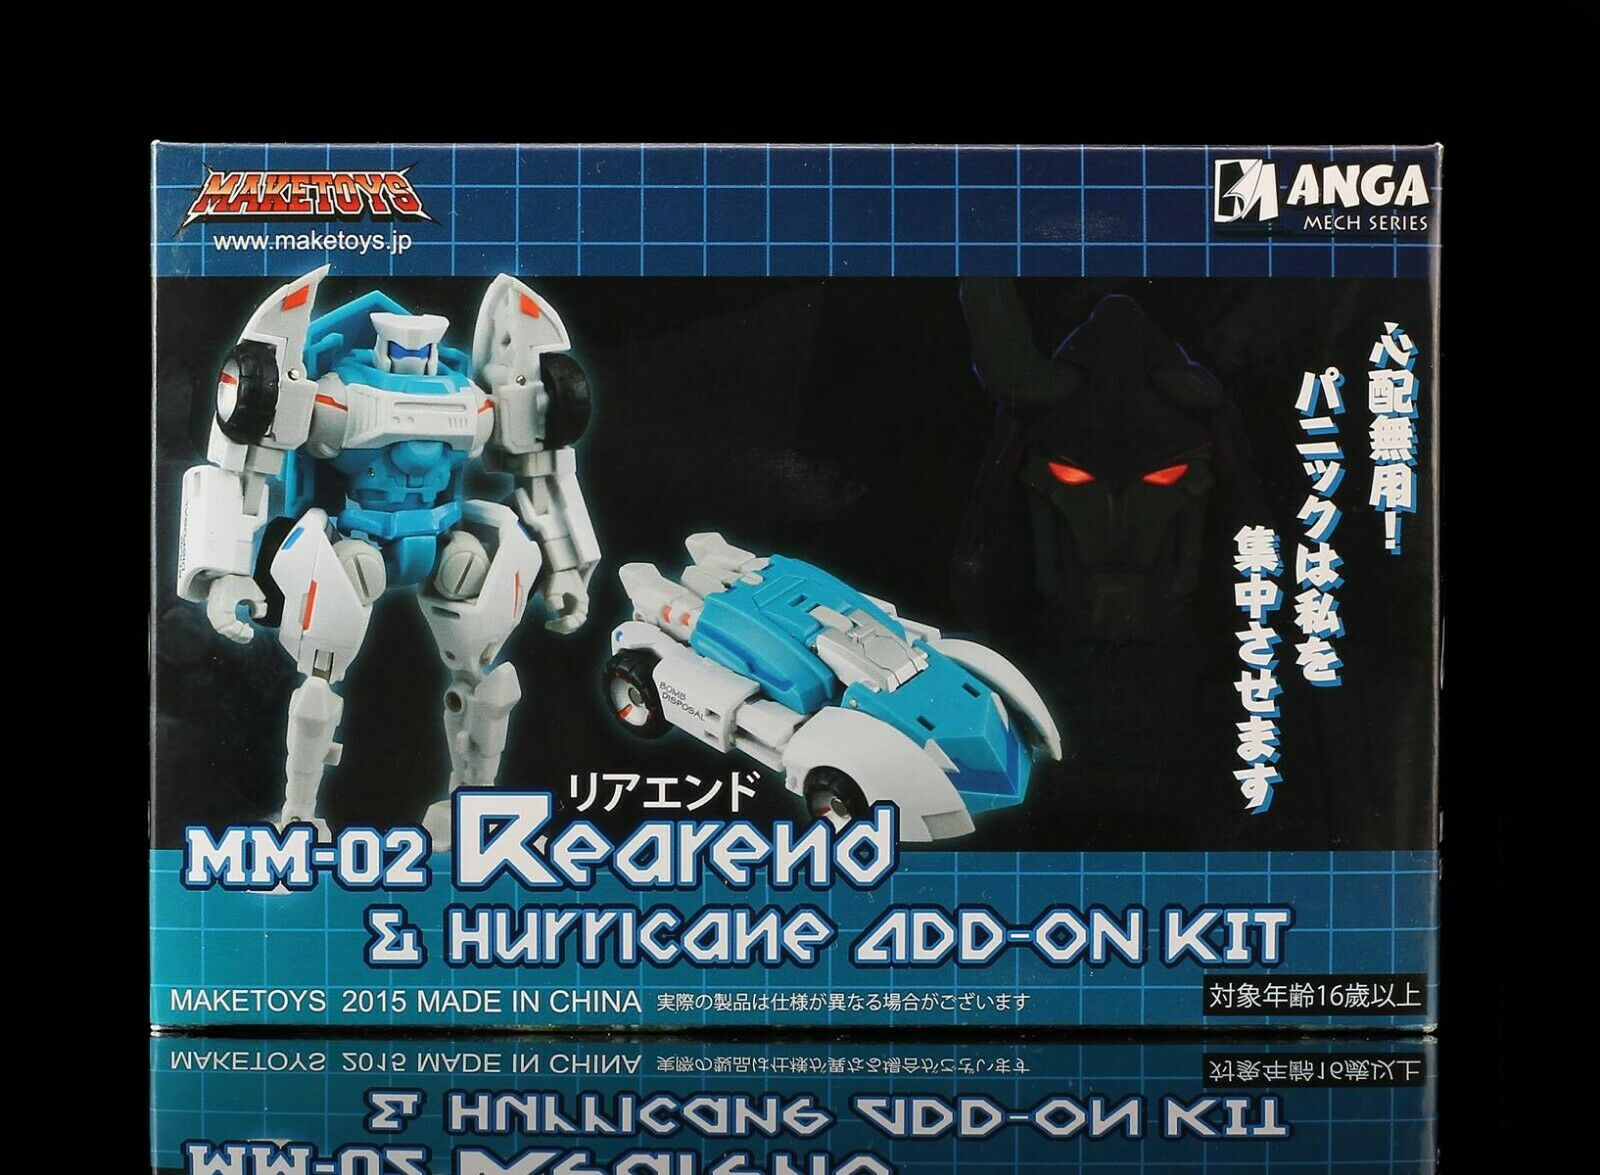 TRANSFORMERS MAKETOYS MANGA MECH MM-02 REAR END WITH HURRICANE UPGRADE KIT MISB